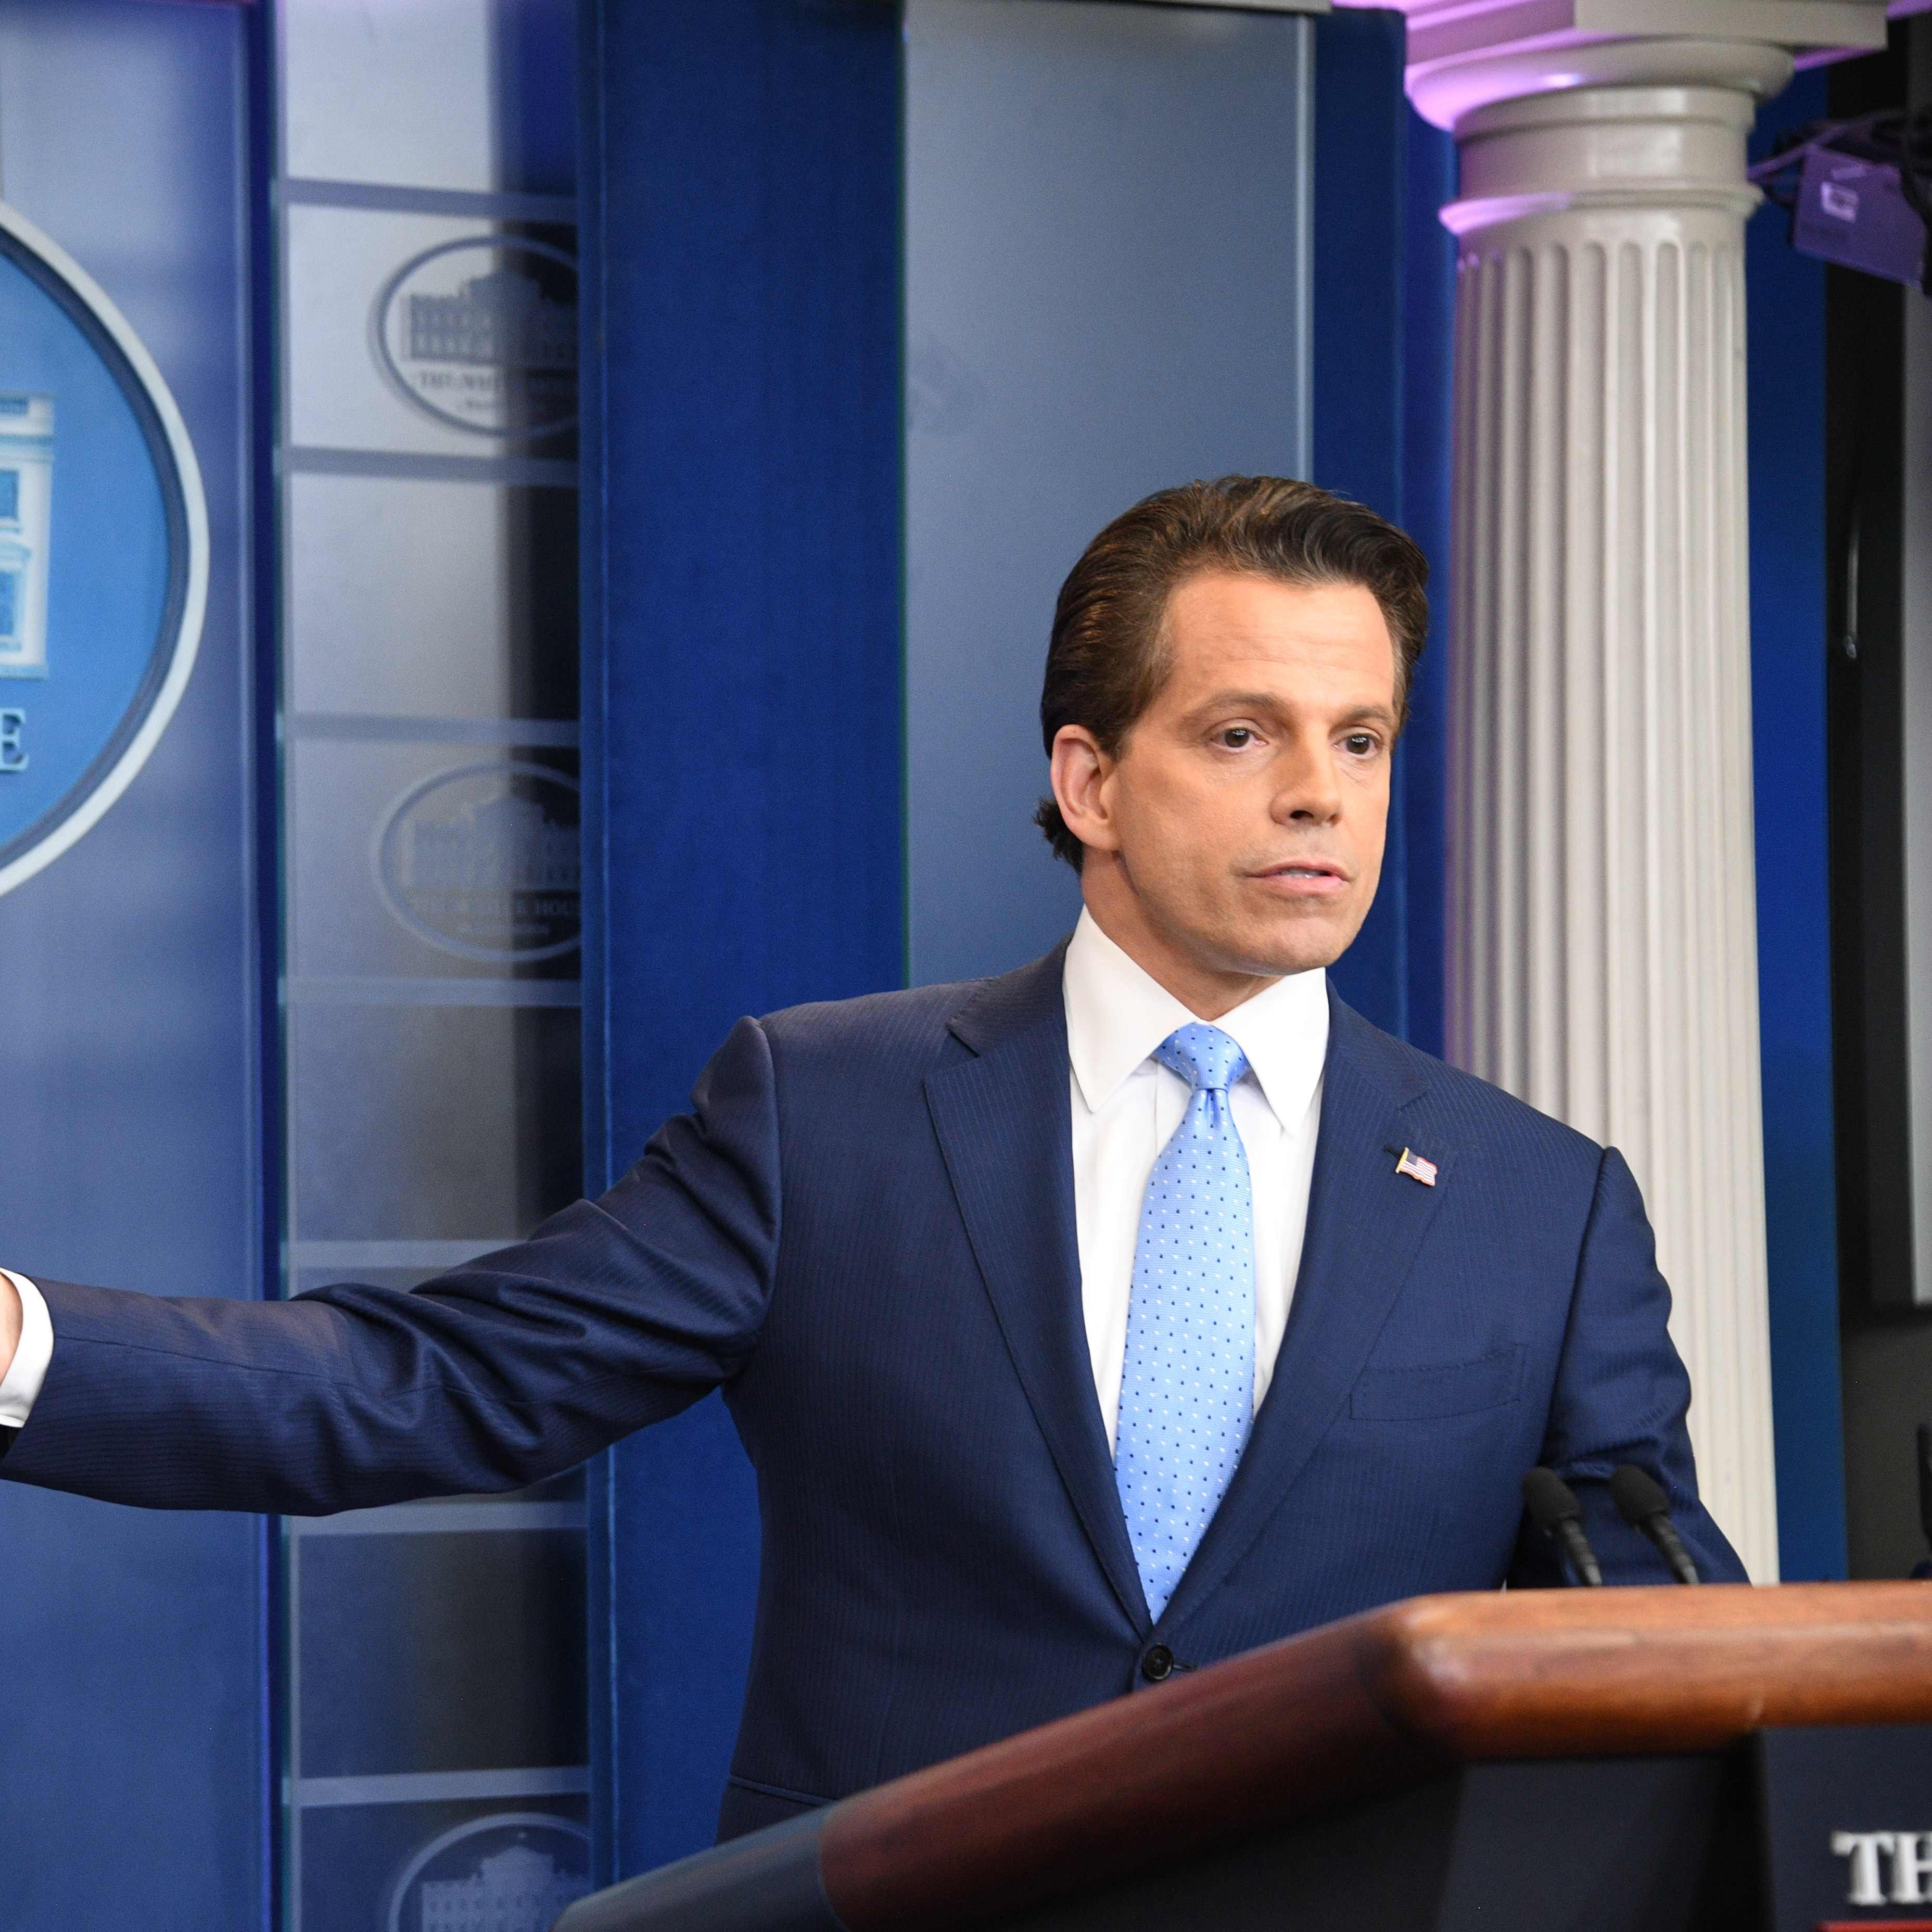 Former Donald Trump aide Anthony Scaramucci goes after Joe Biden through his son